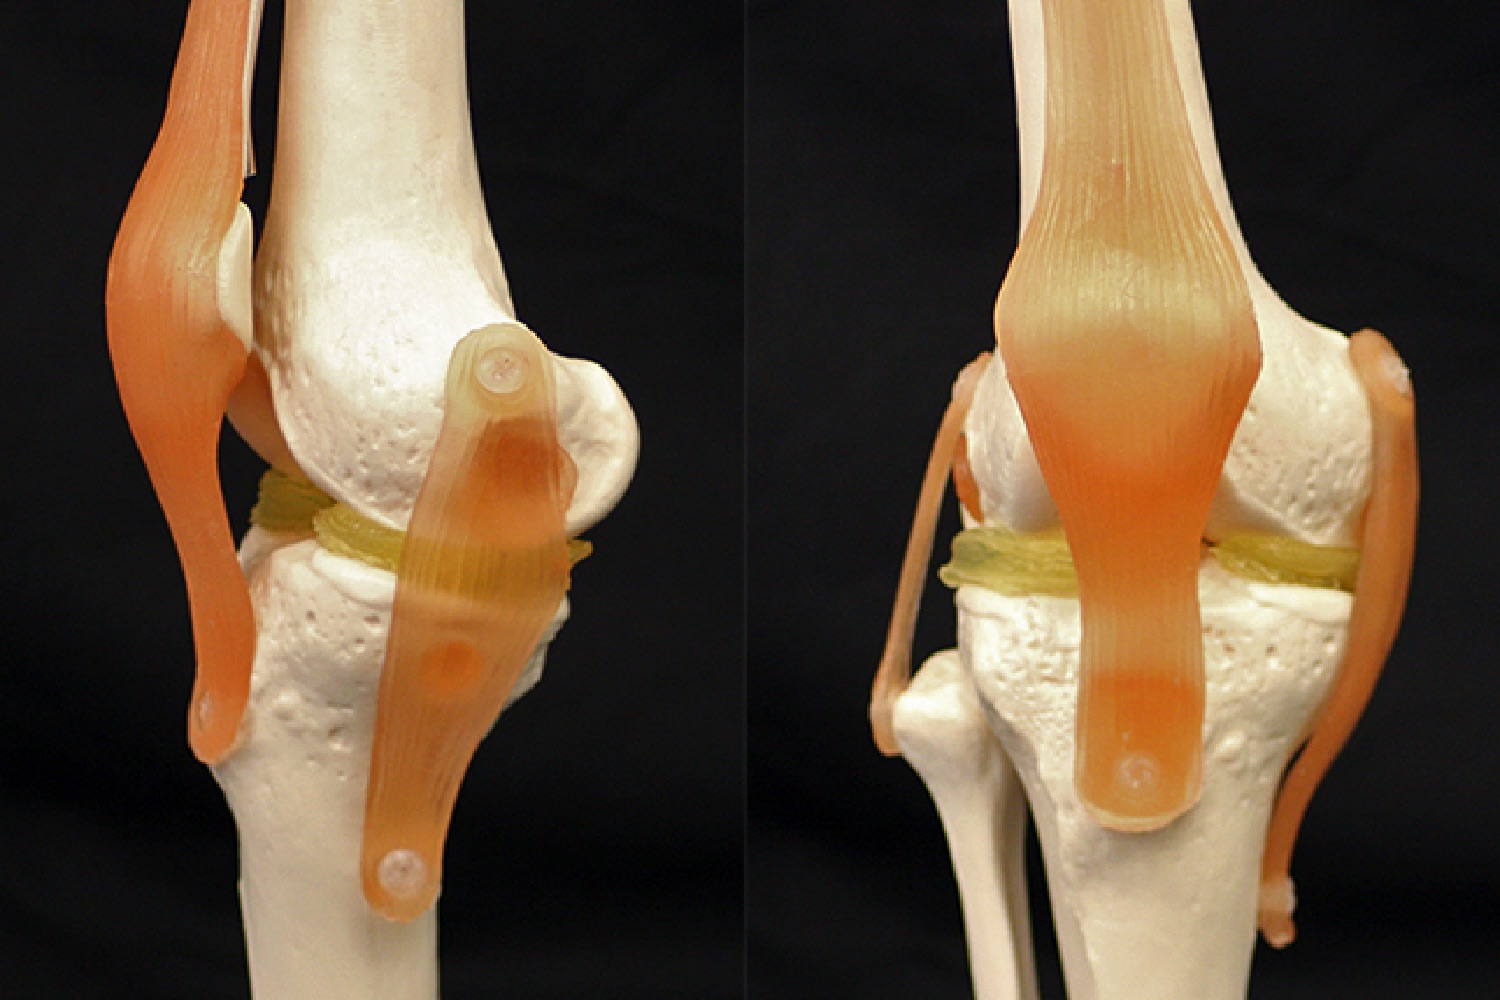 3D printing could help repair damaged knees with cartilage